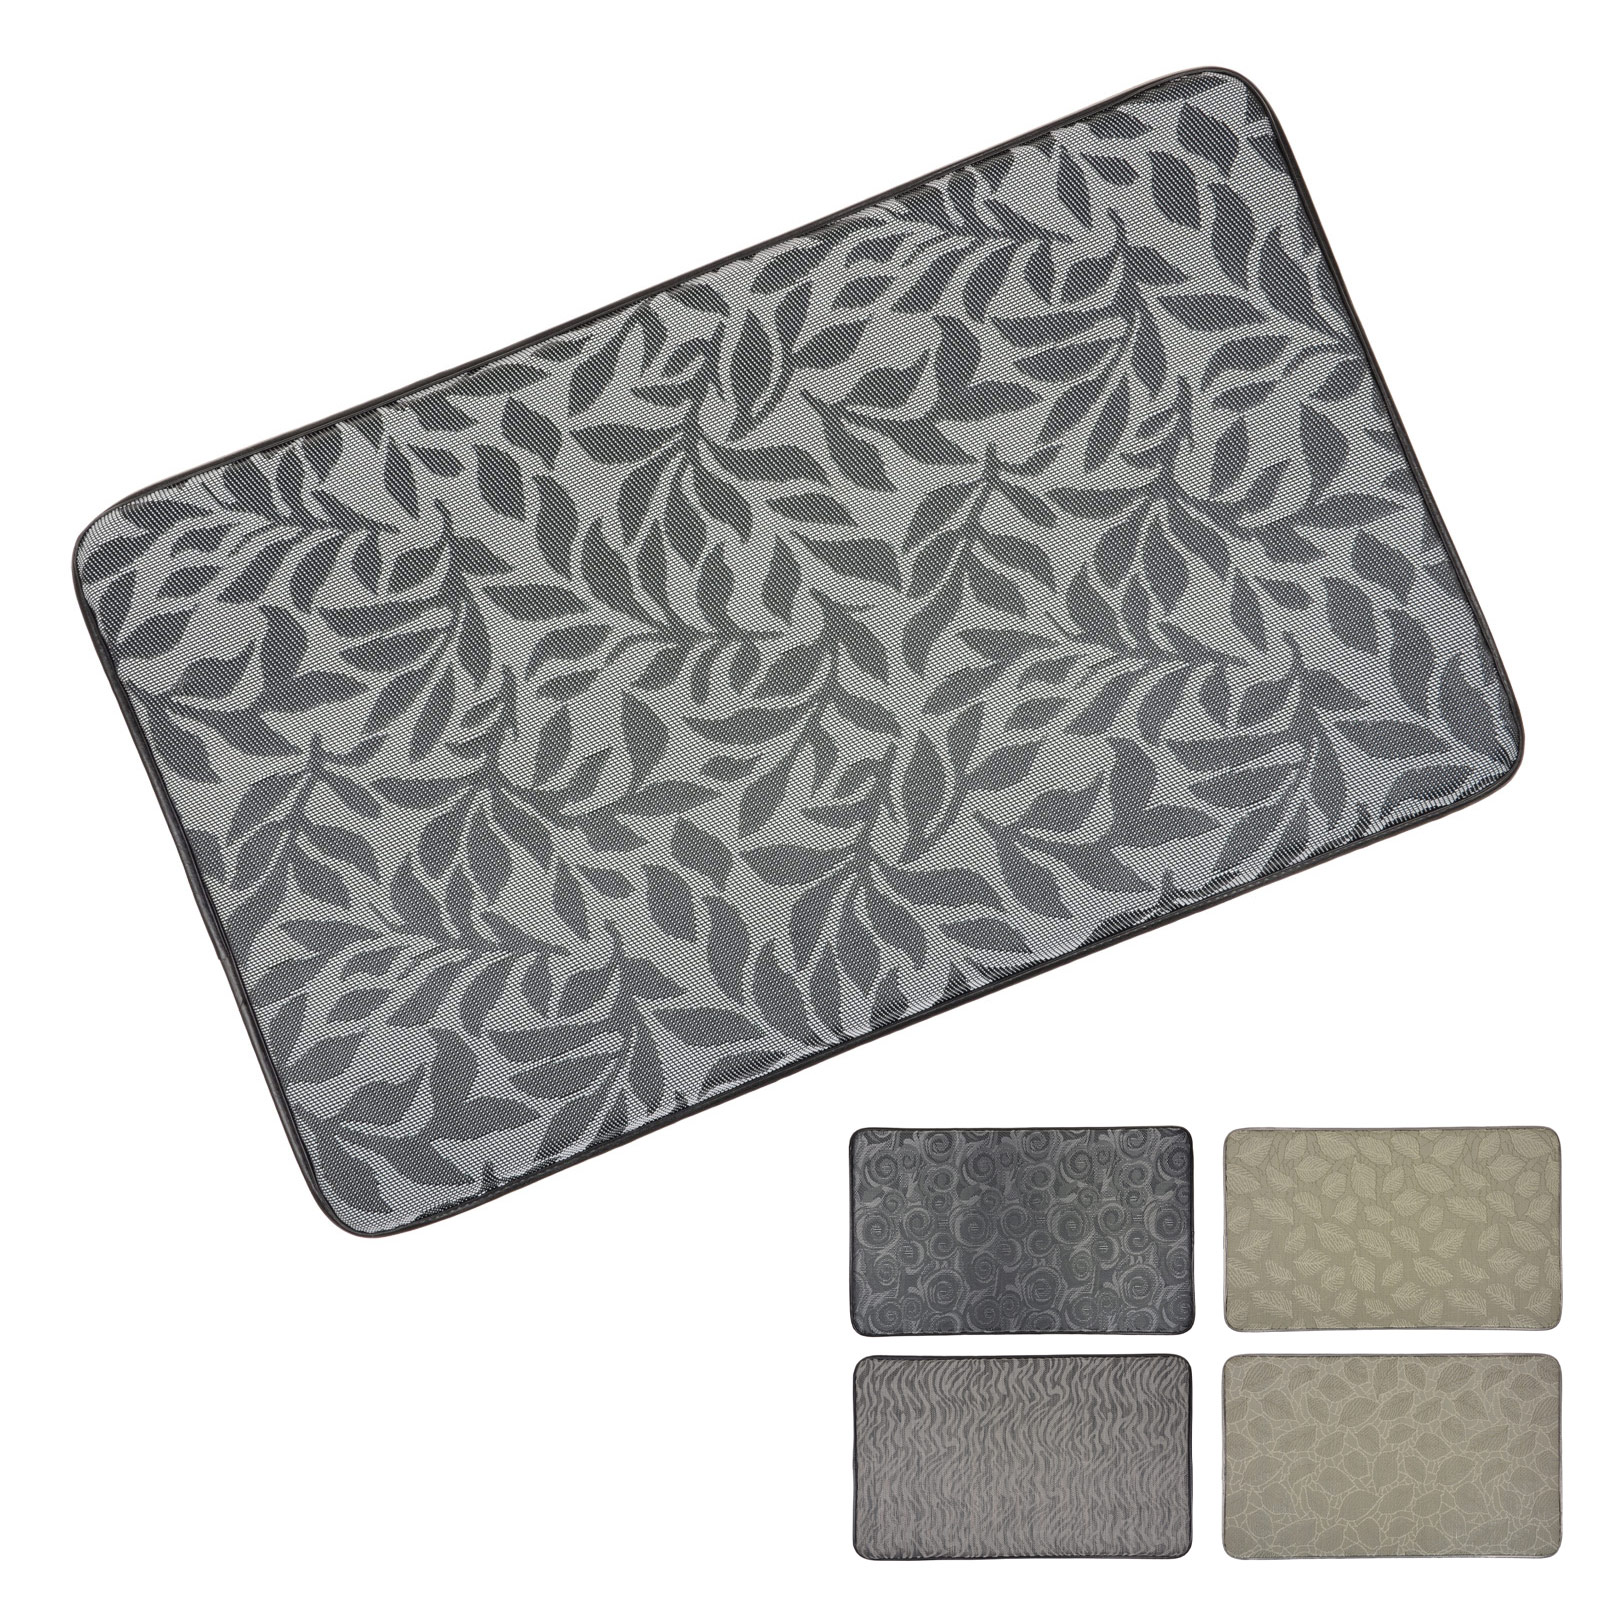 Anti Fatigue Kitchen Floor Mats: High Quality Anti Fatigue Padded Floor